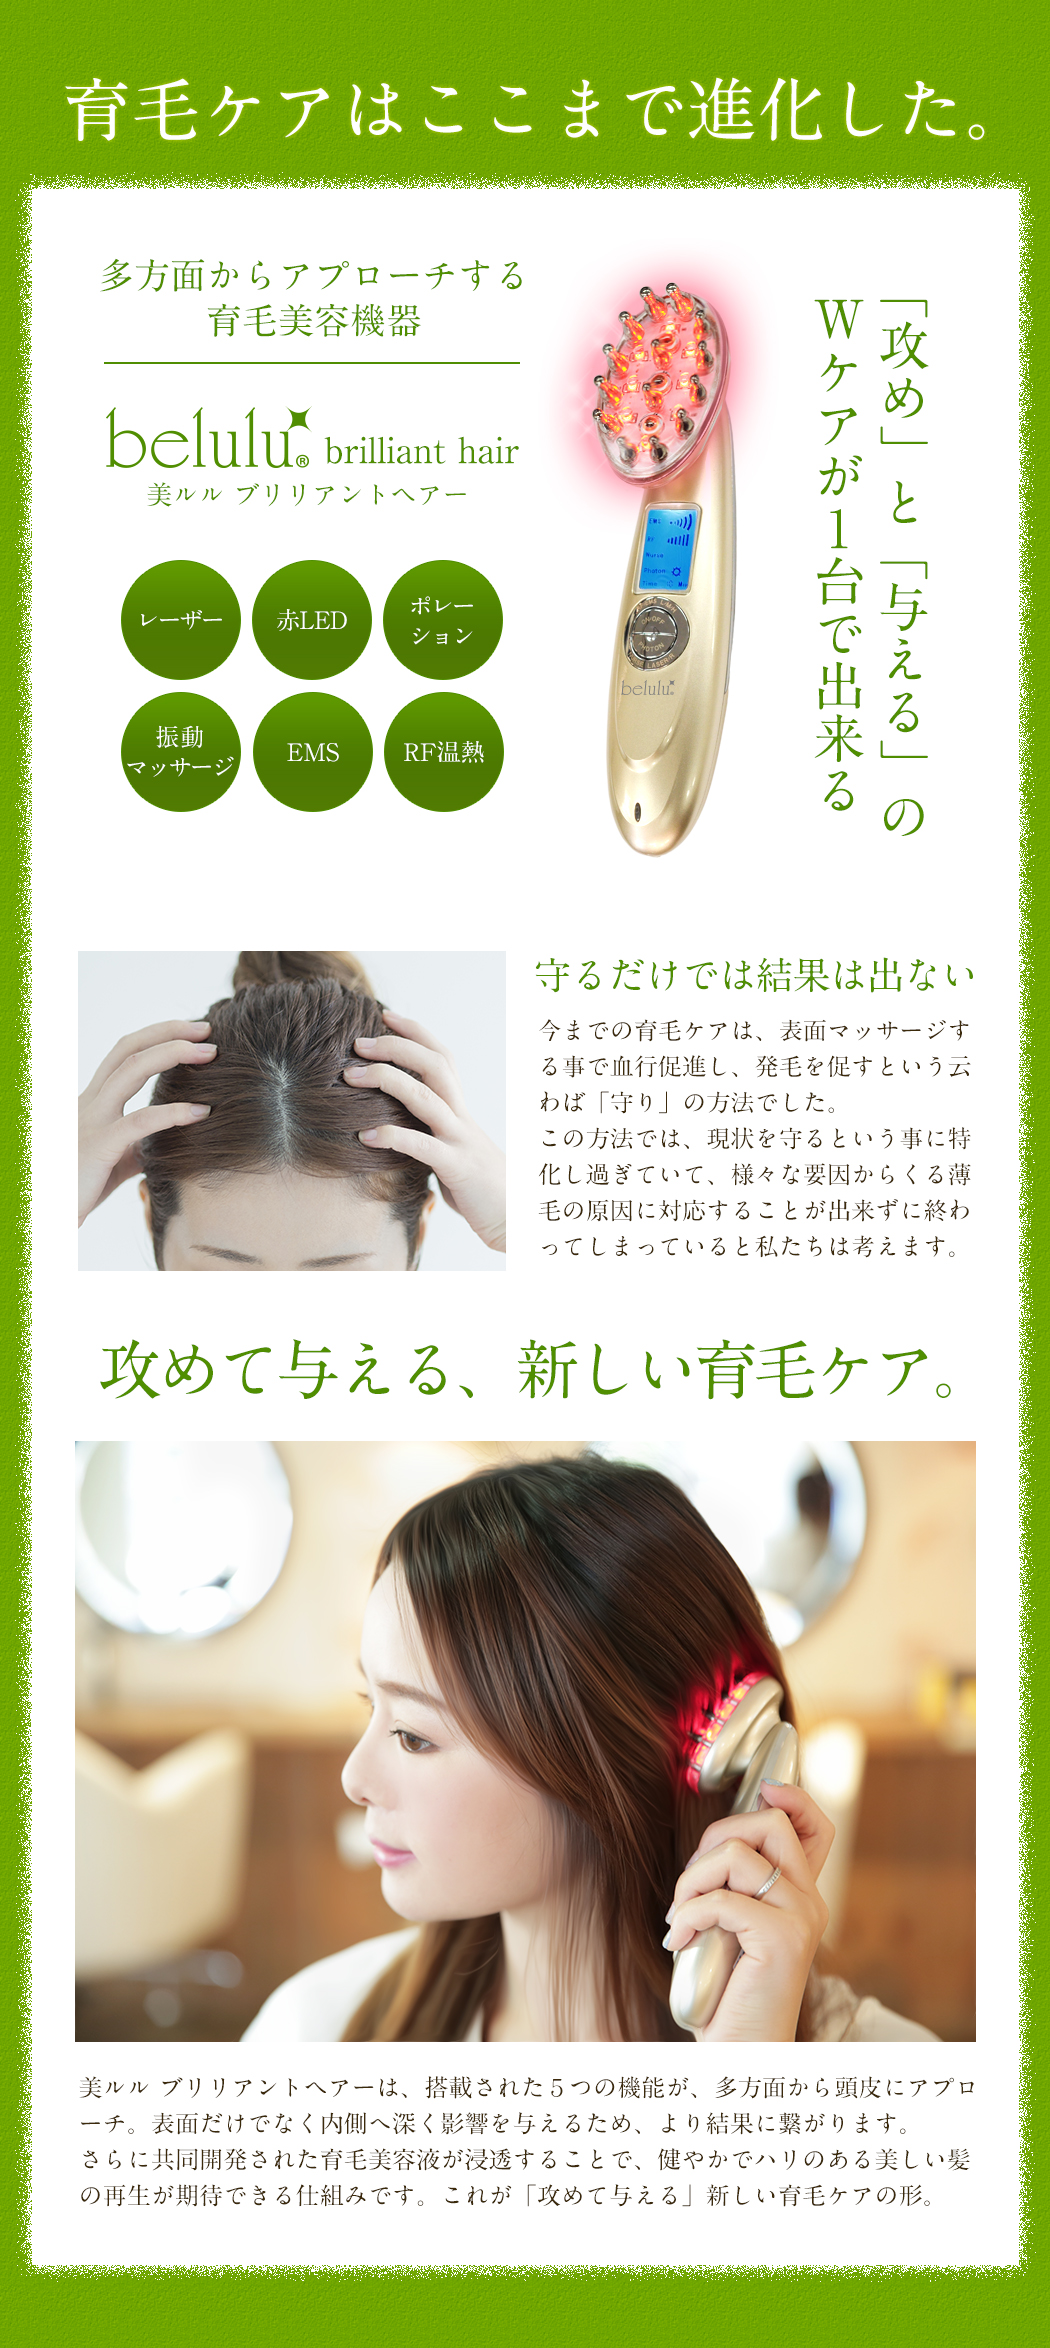 Multifunctional scalp care machine beauty Lulu brilliant hair laser LED EMS ポレーション warm temperature hair-growth beauty apparatus hair care is trichogenous